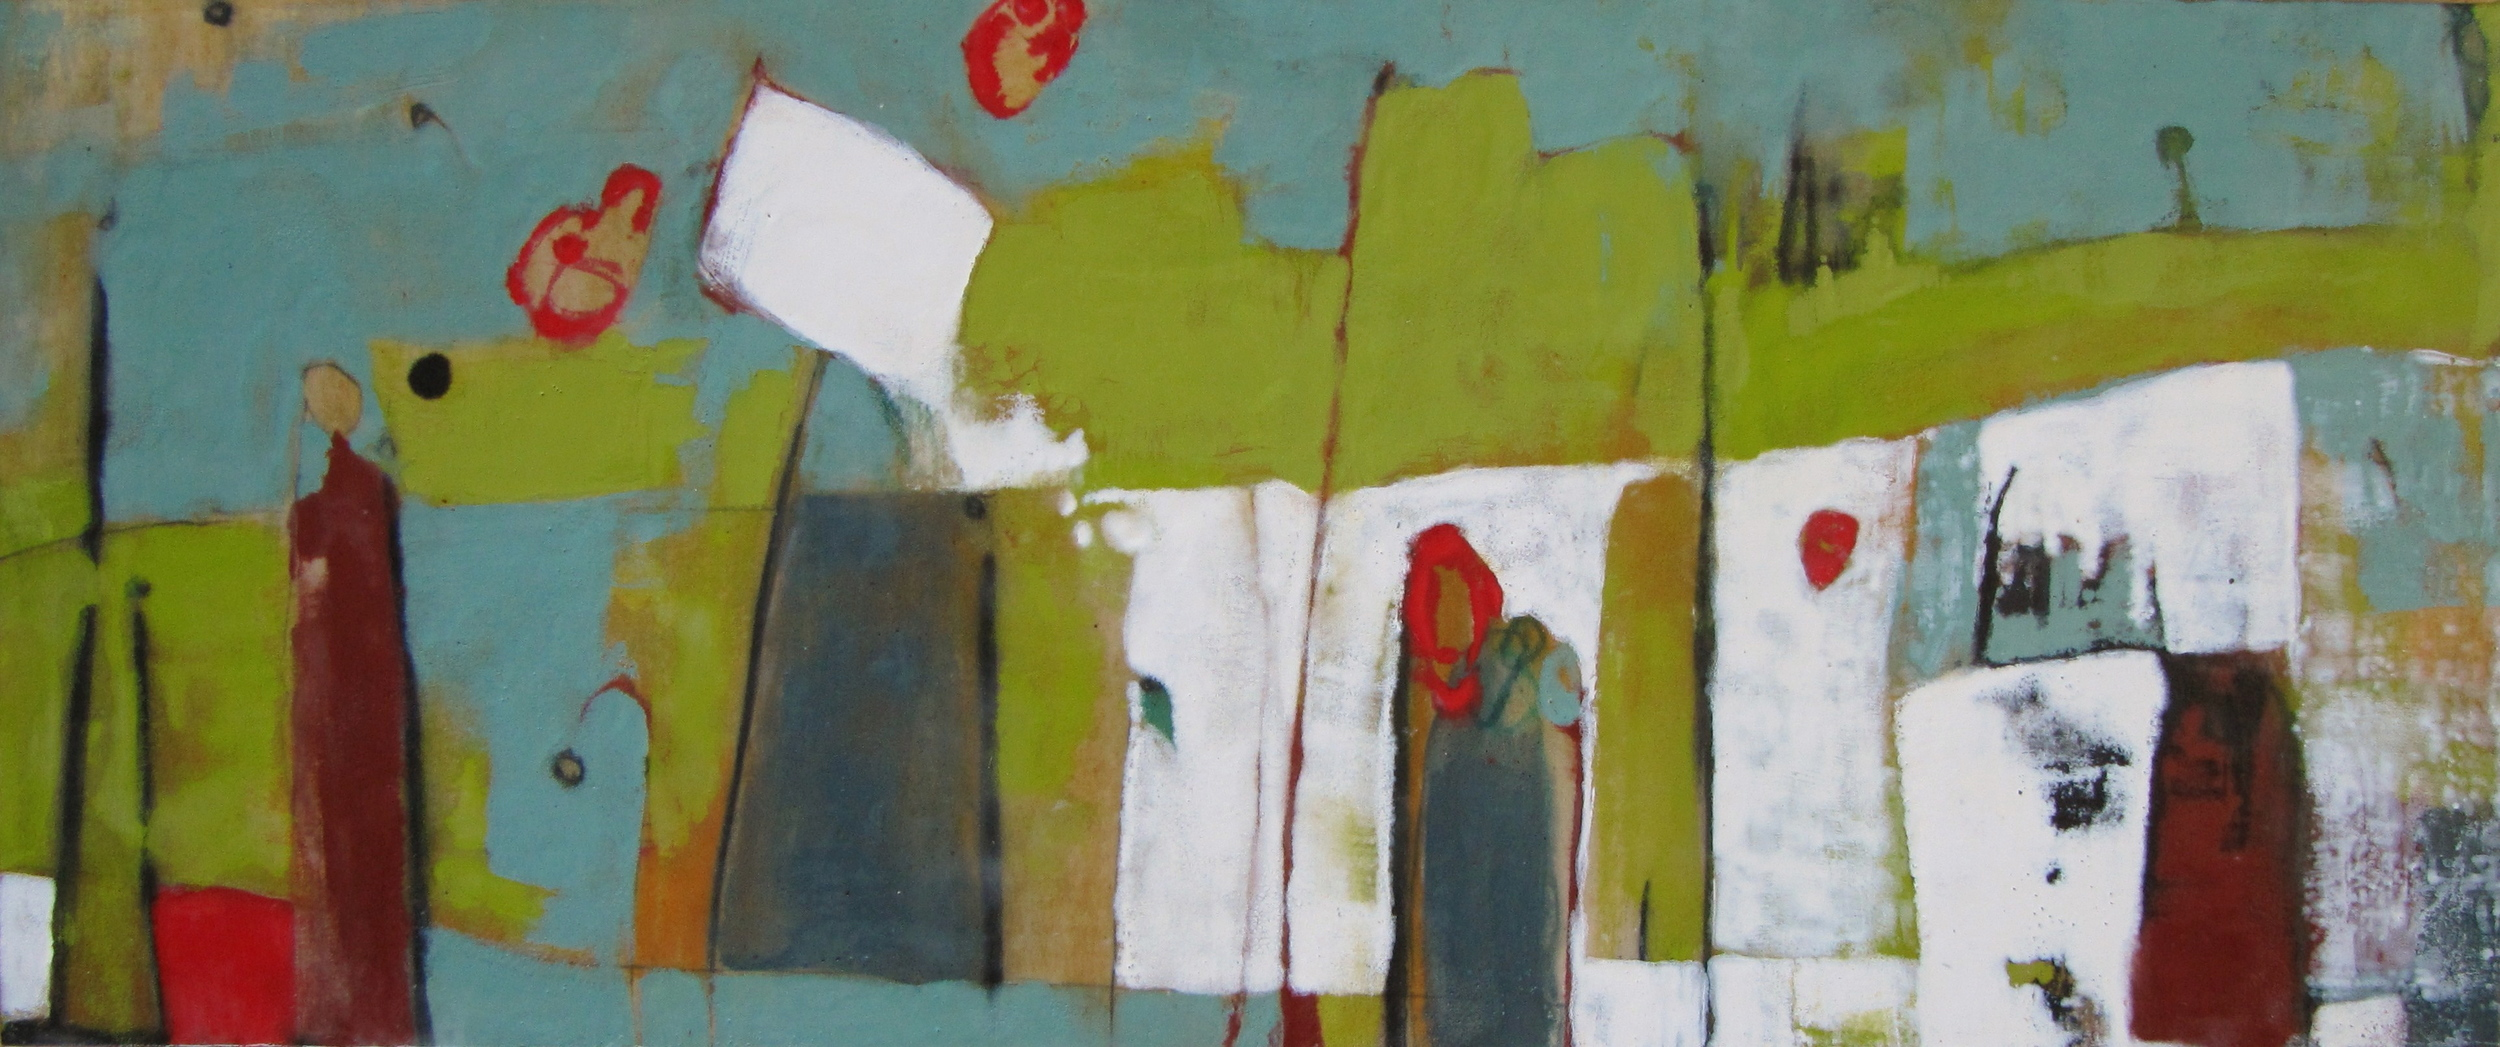 Spilling Mysteries, 2008 / Encaustic on canvas on wood panel, 20 x 48 / Sold